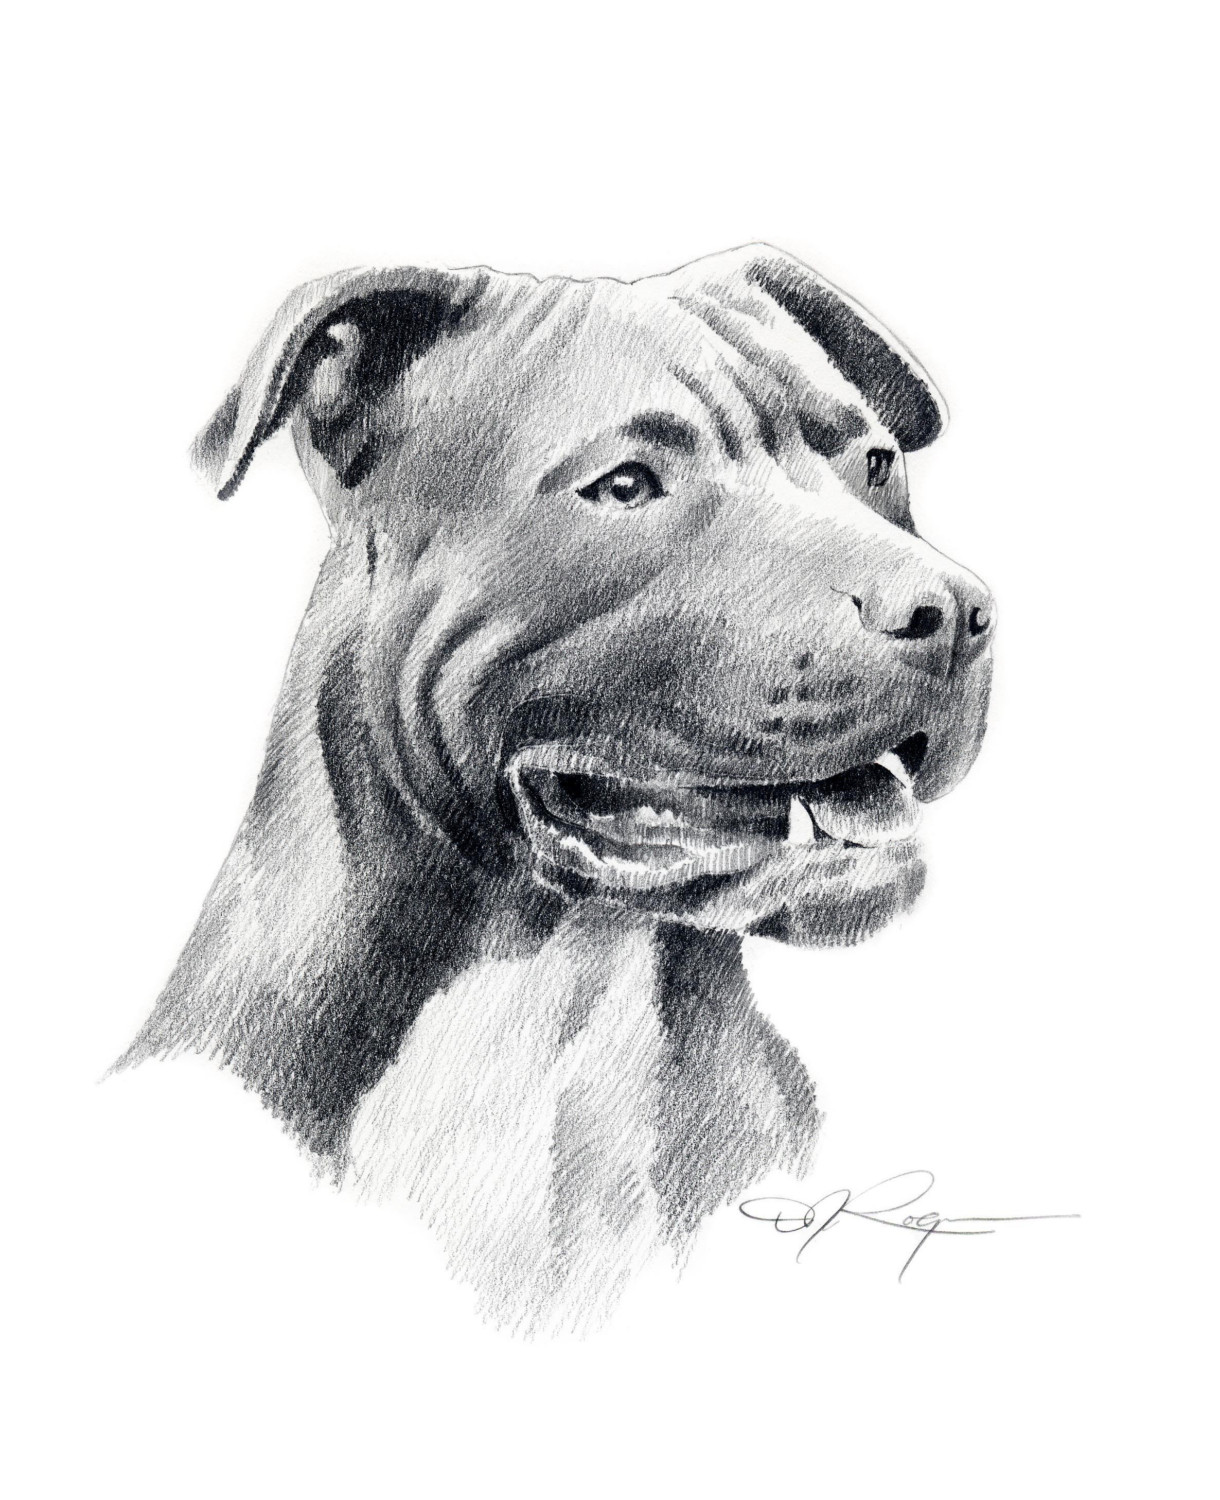 Drawn pitbull By Dog drawing Drawing Baby